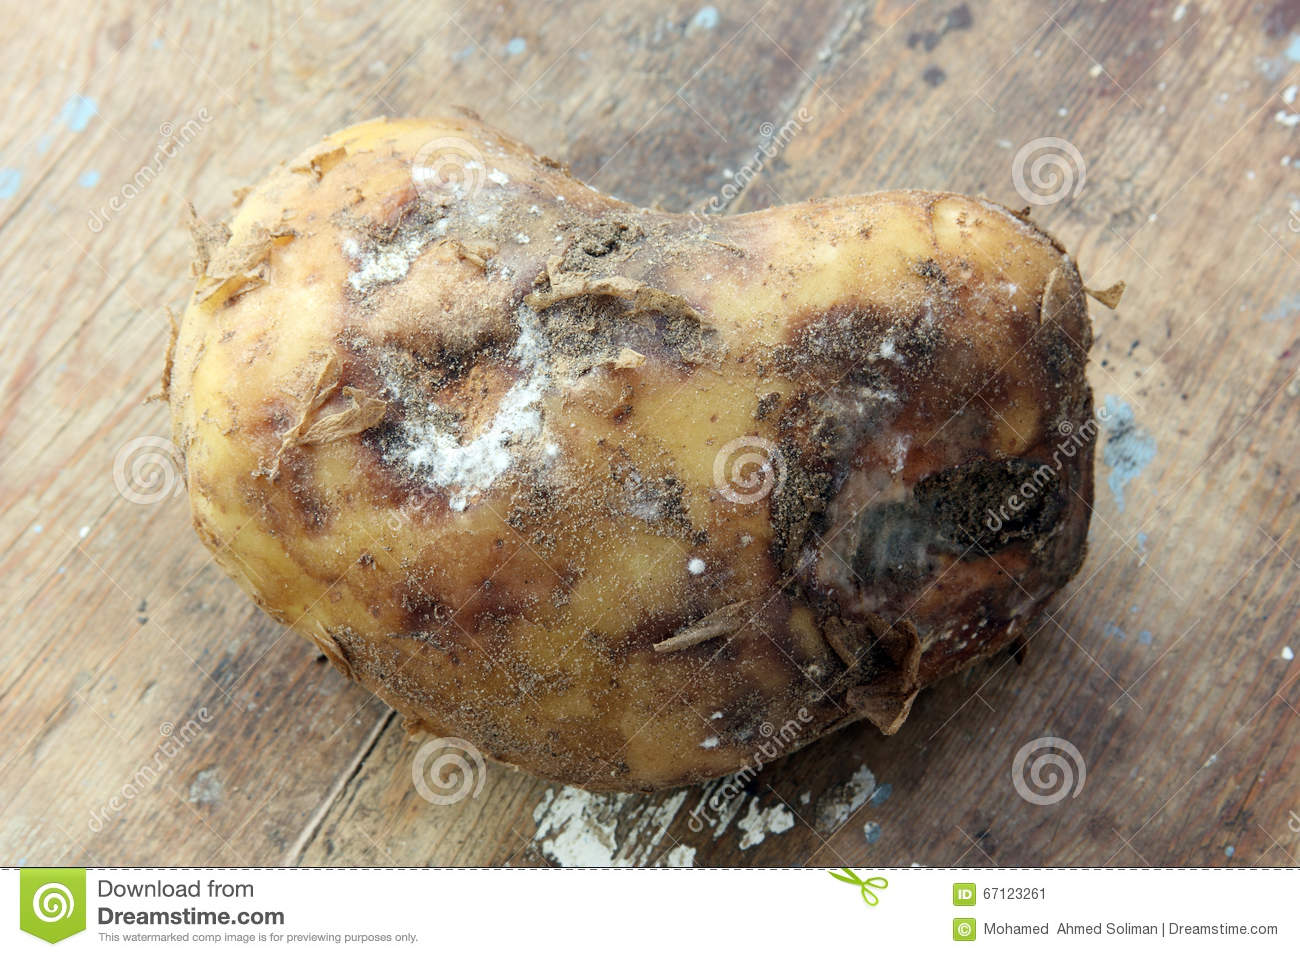 Image result for a rotten potato